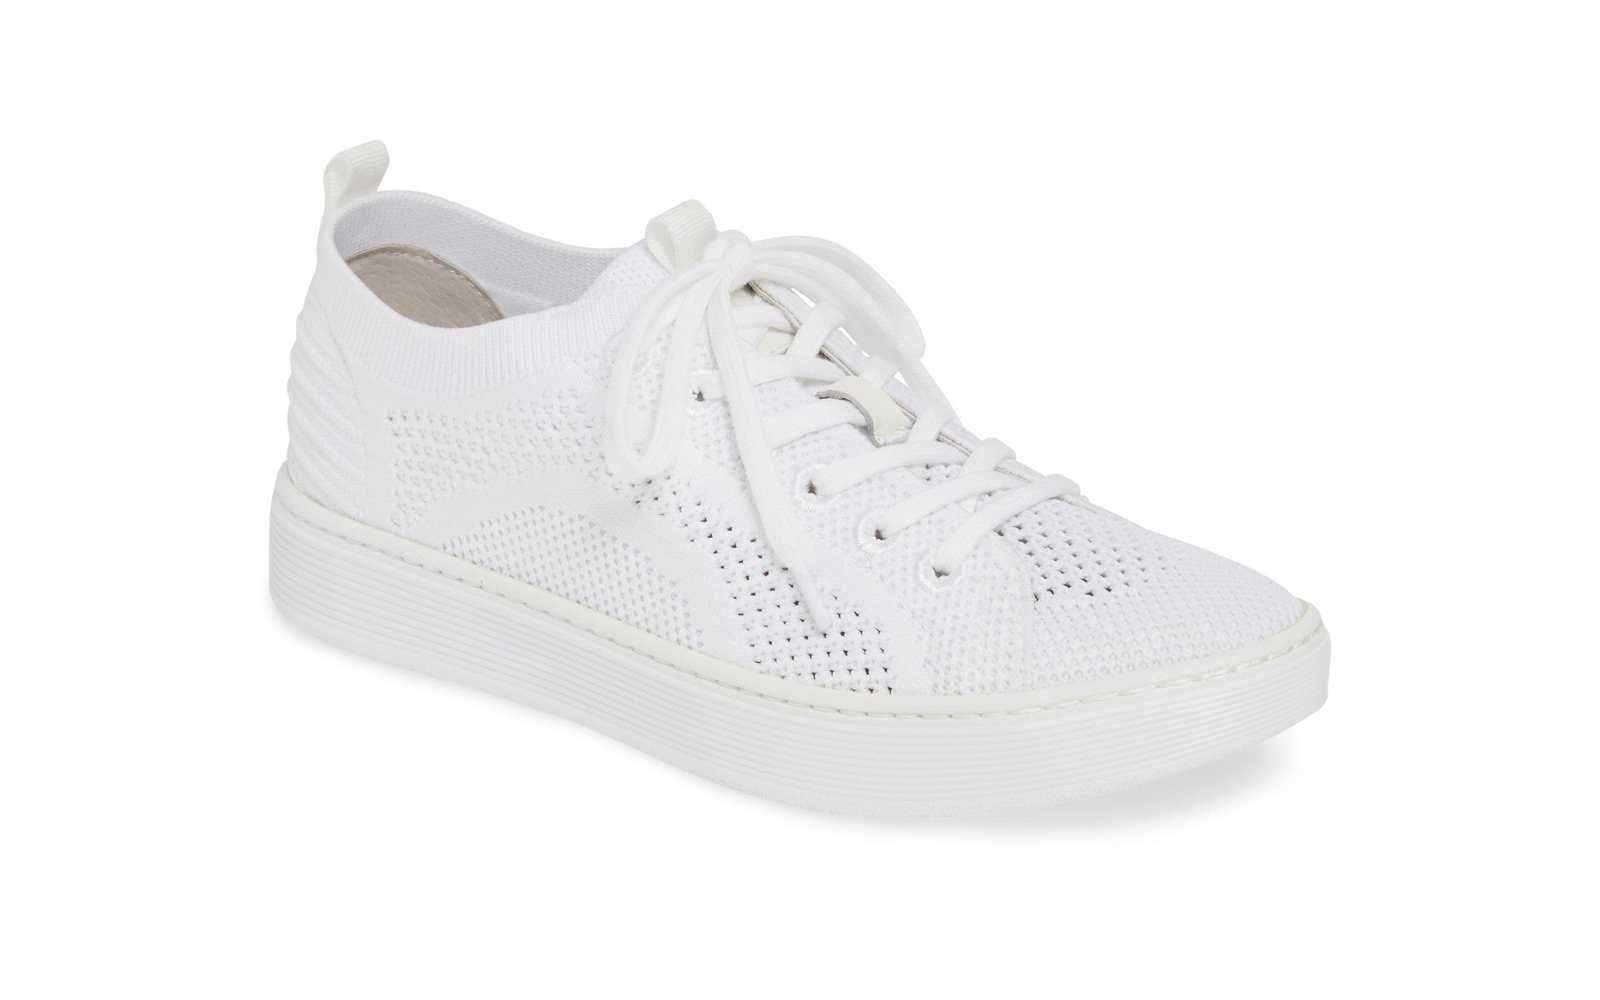 sofft white sneakers for women